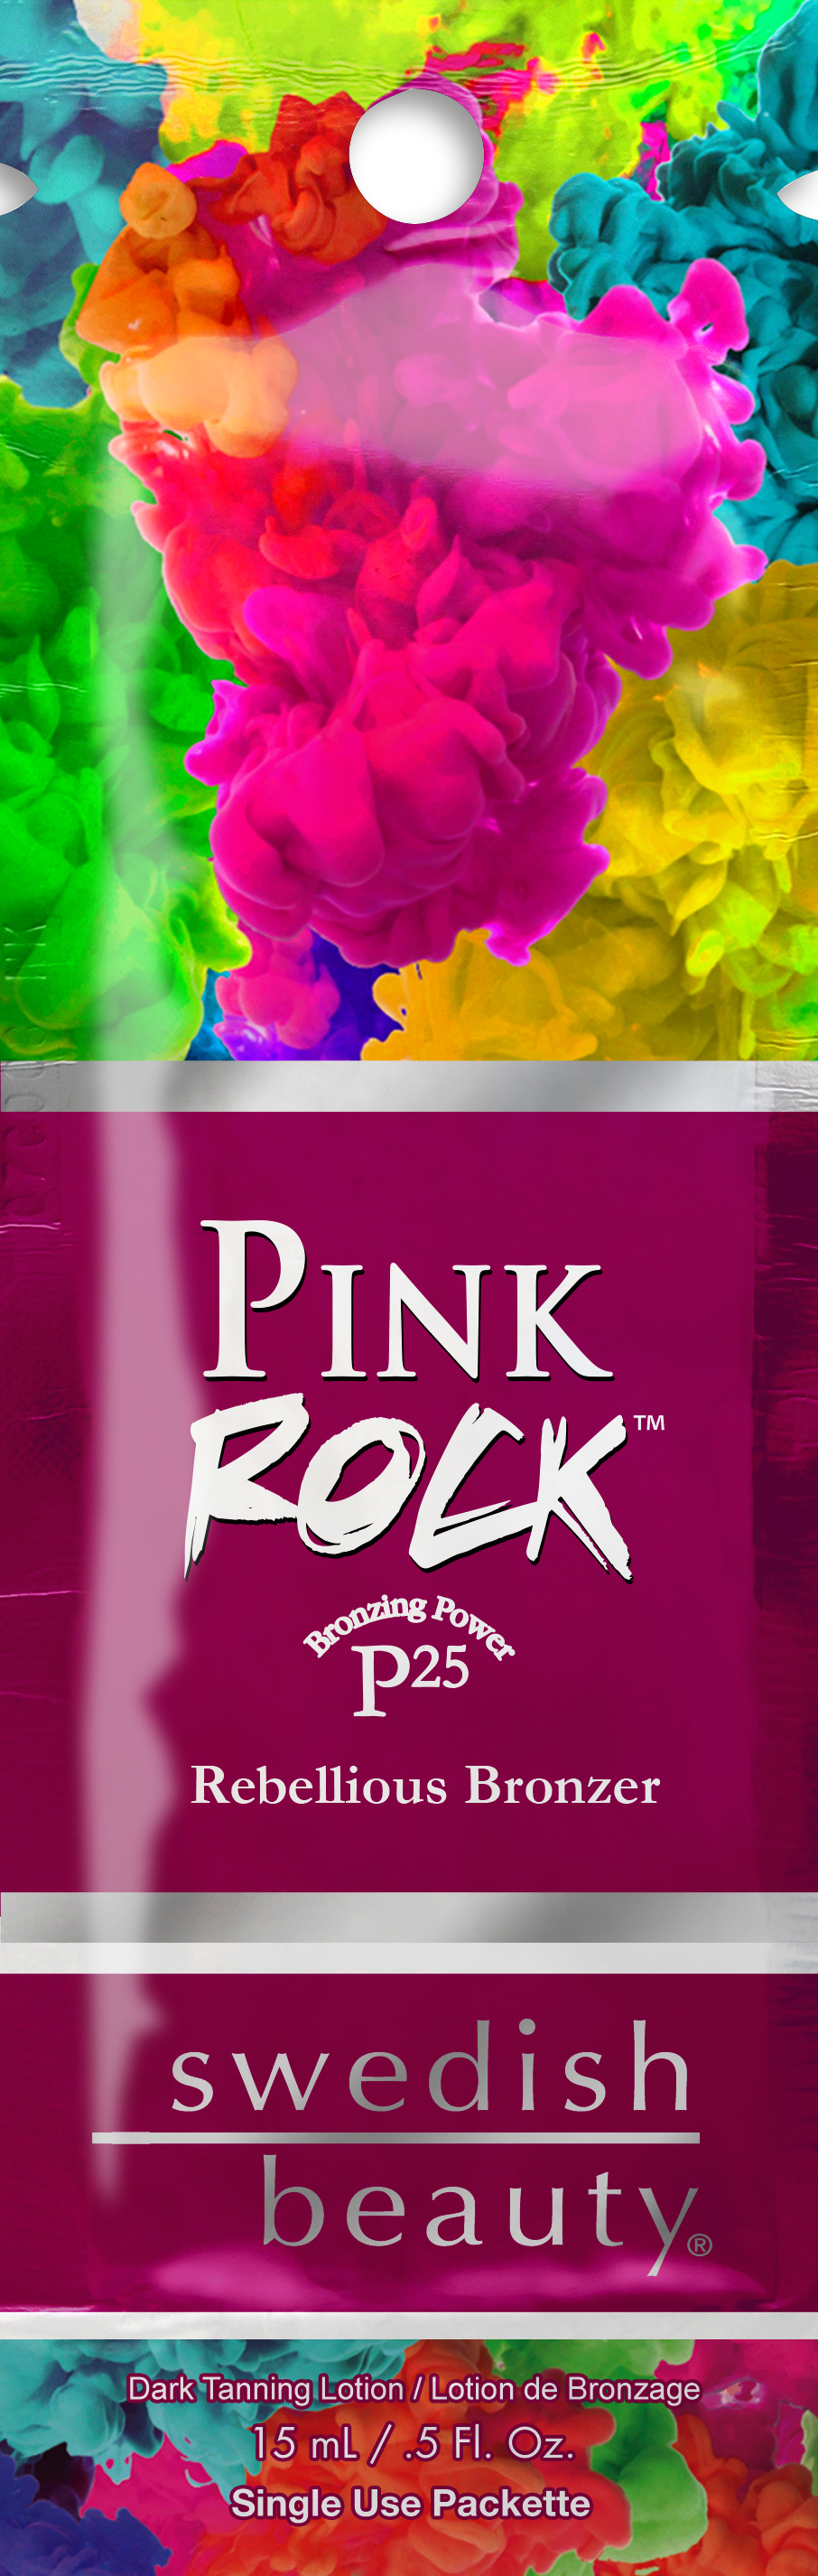 Pink Rock™ P25 Rebellious Bronzer with Wolfberry Pkt